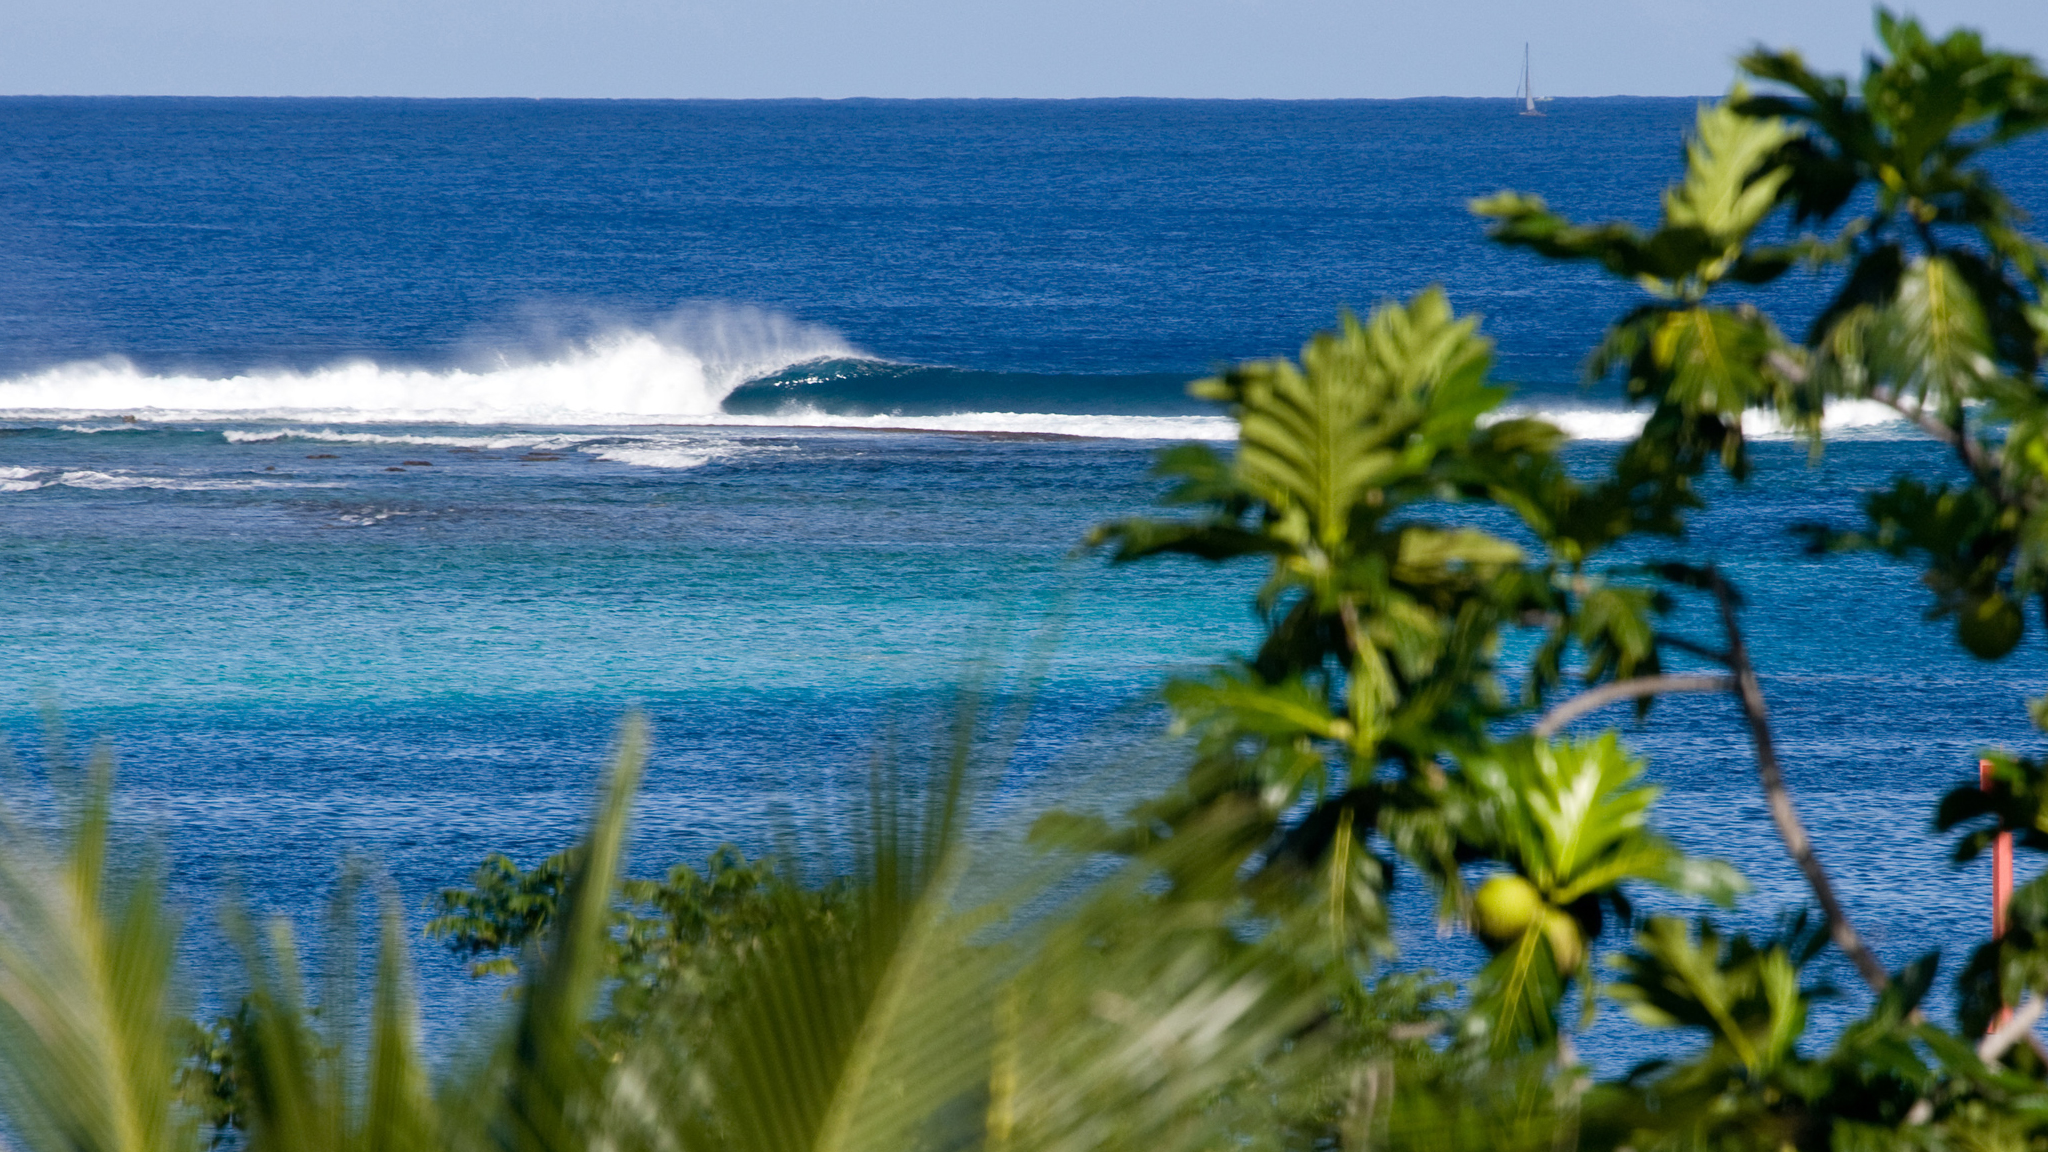 This is the dream, right? A tropical island, cobalt water, offshore winds and a perfect wave with nobody out. If ever there were a surfing fantasy island it might be Moorea, Tahiti, but then again, judging by the rest of the images in Shawn Parkin's portfolio it might be best to book an around-the-world plane ticket.